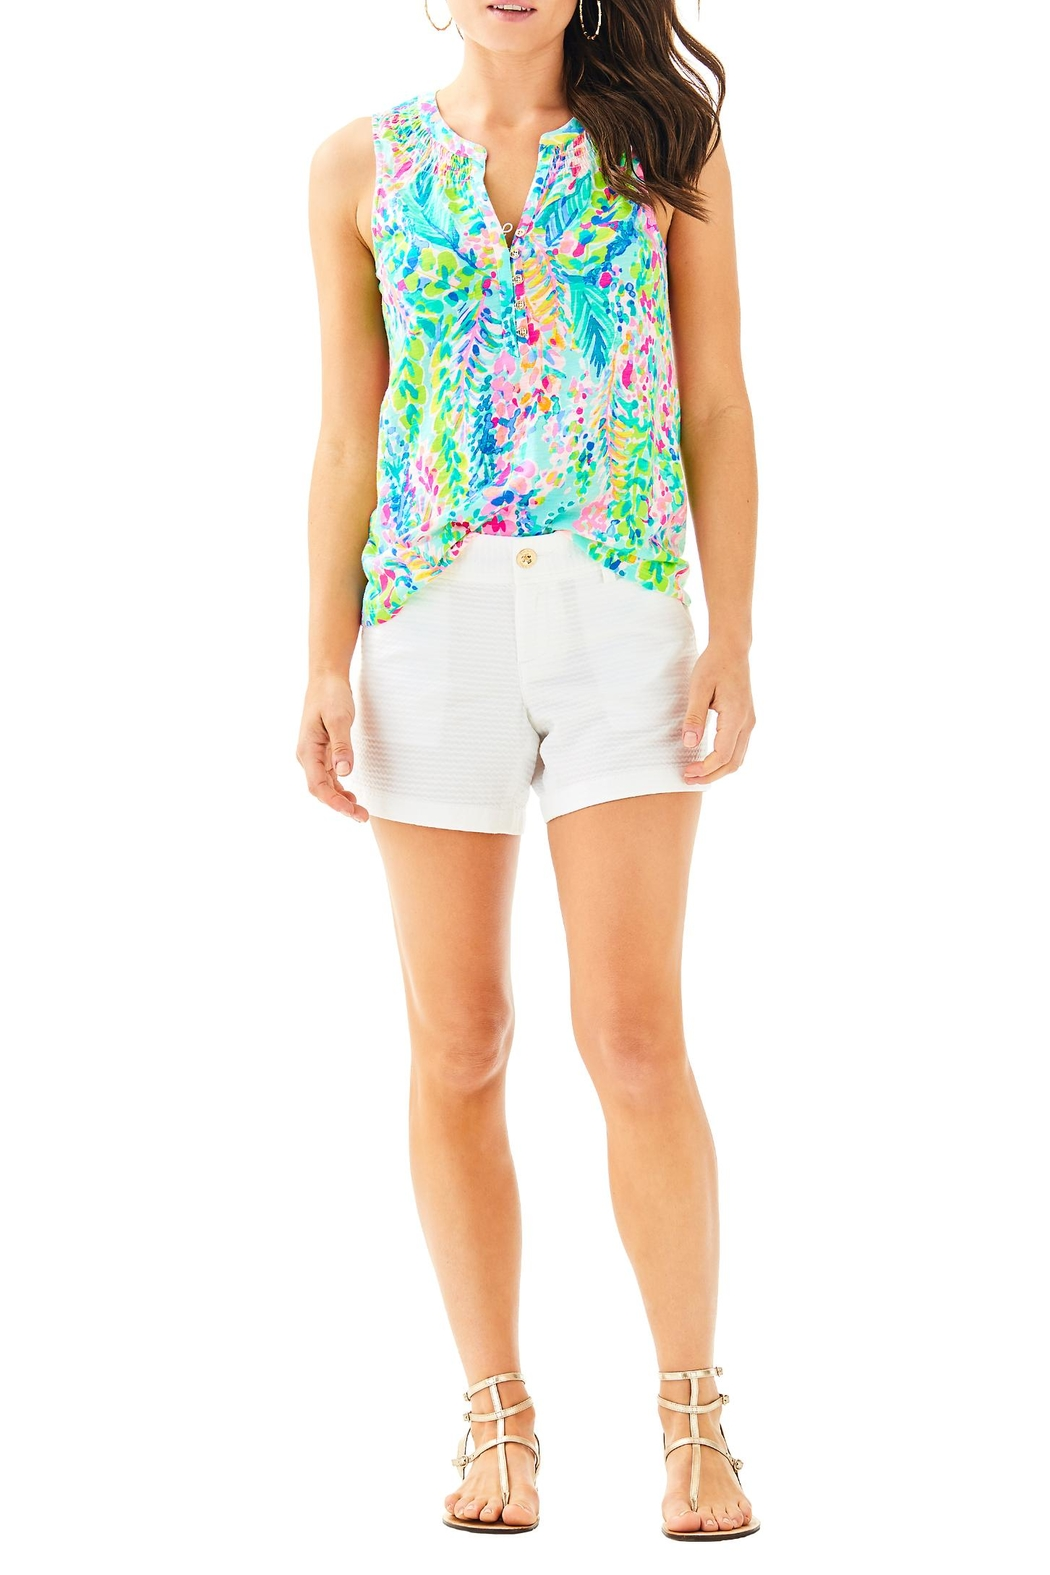 Lilly Pulitzer Essie Top - Side Cropped Image